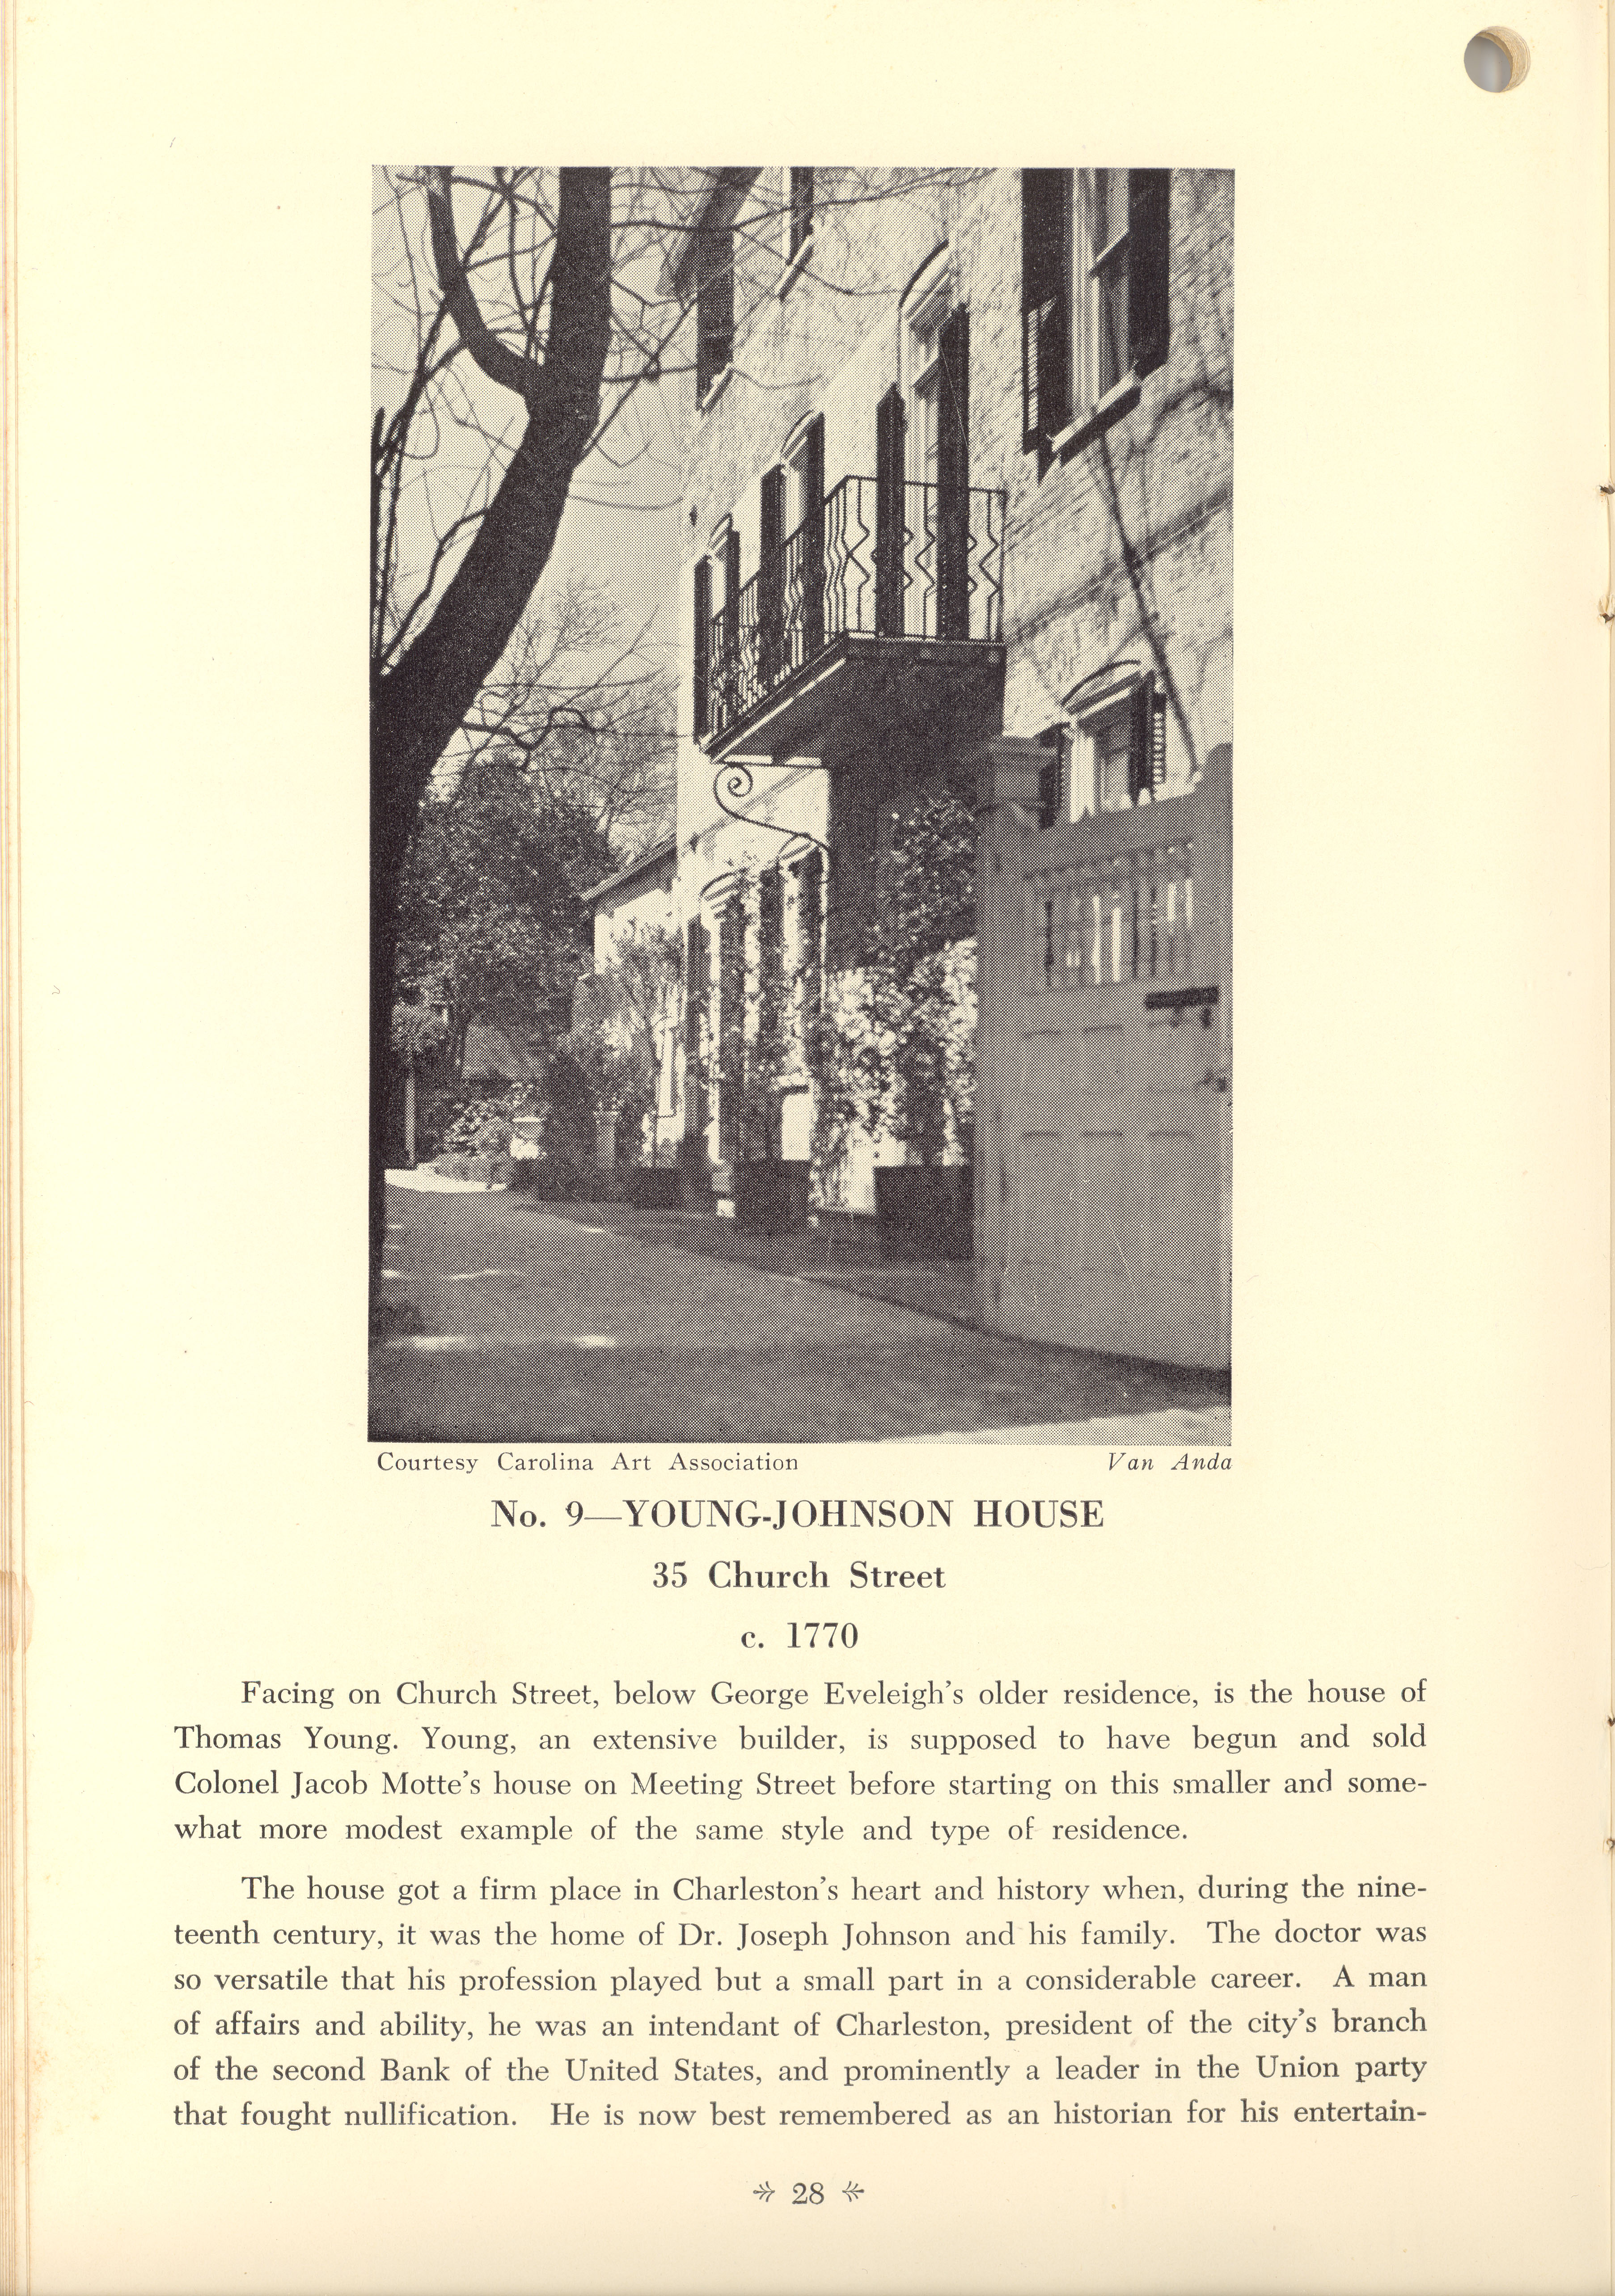 Page 28:  No. 9 - Young-Johnson House, 35 Church Street, c. 1780